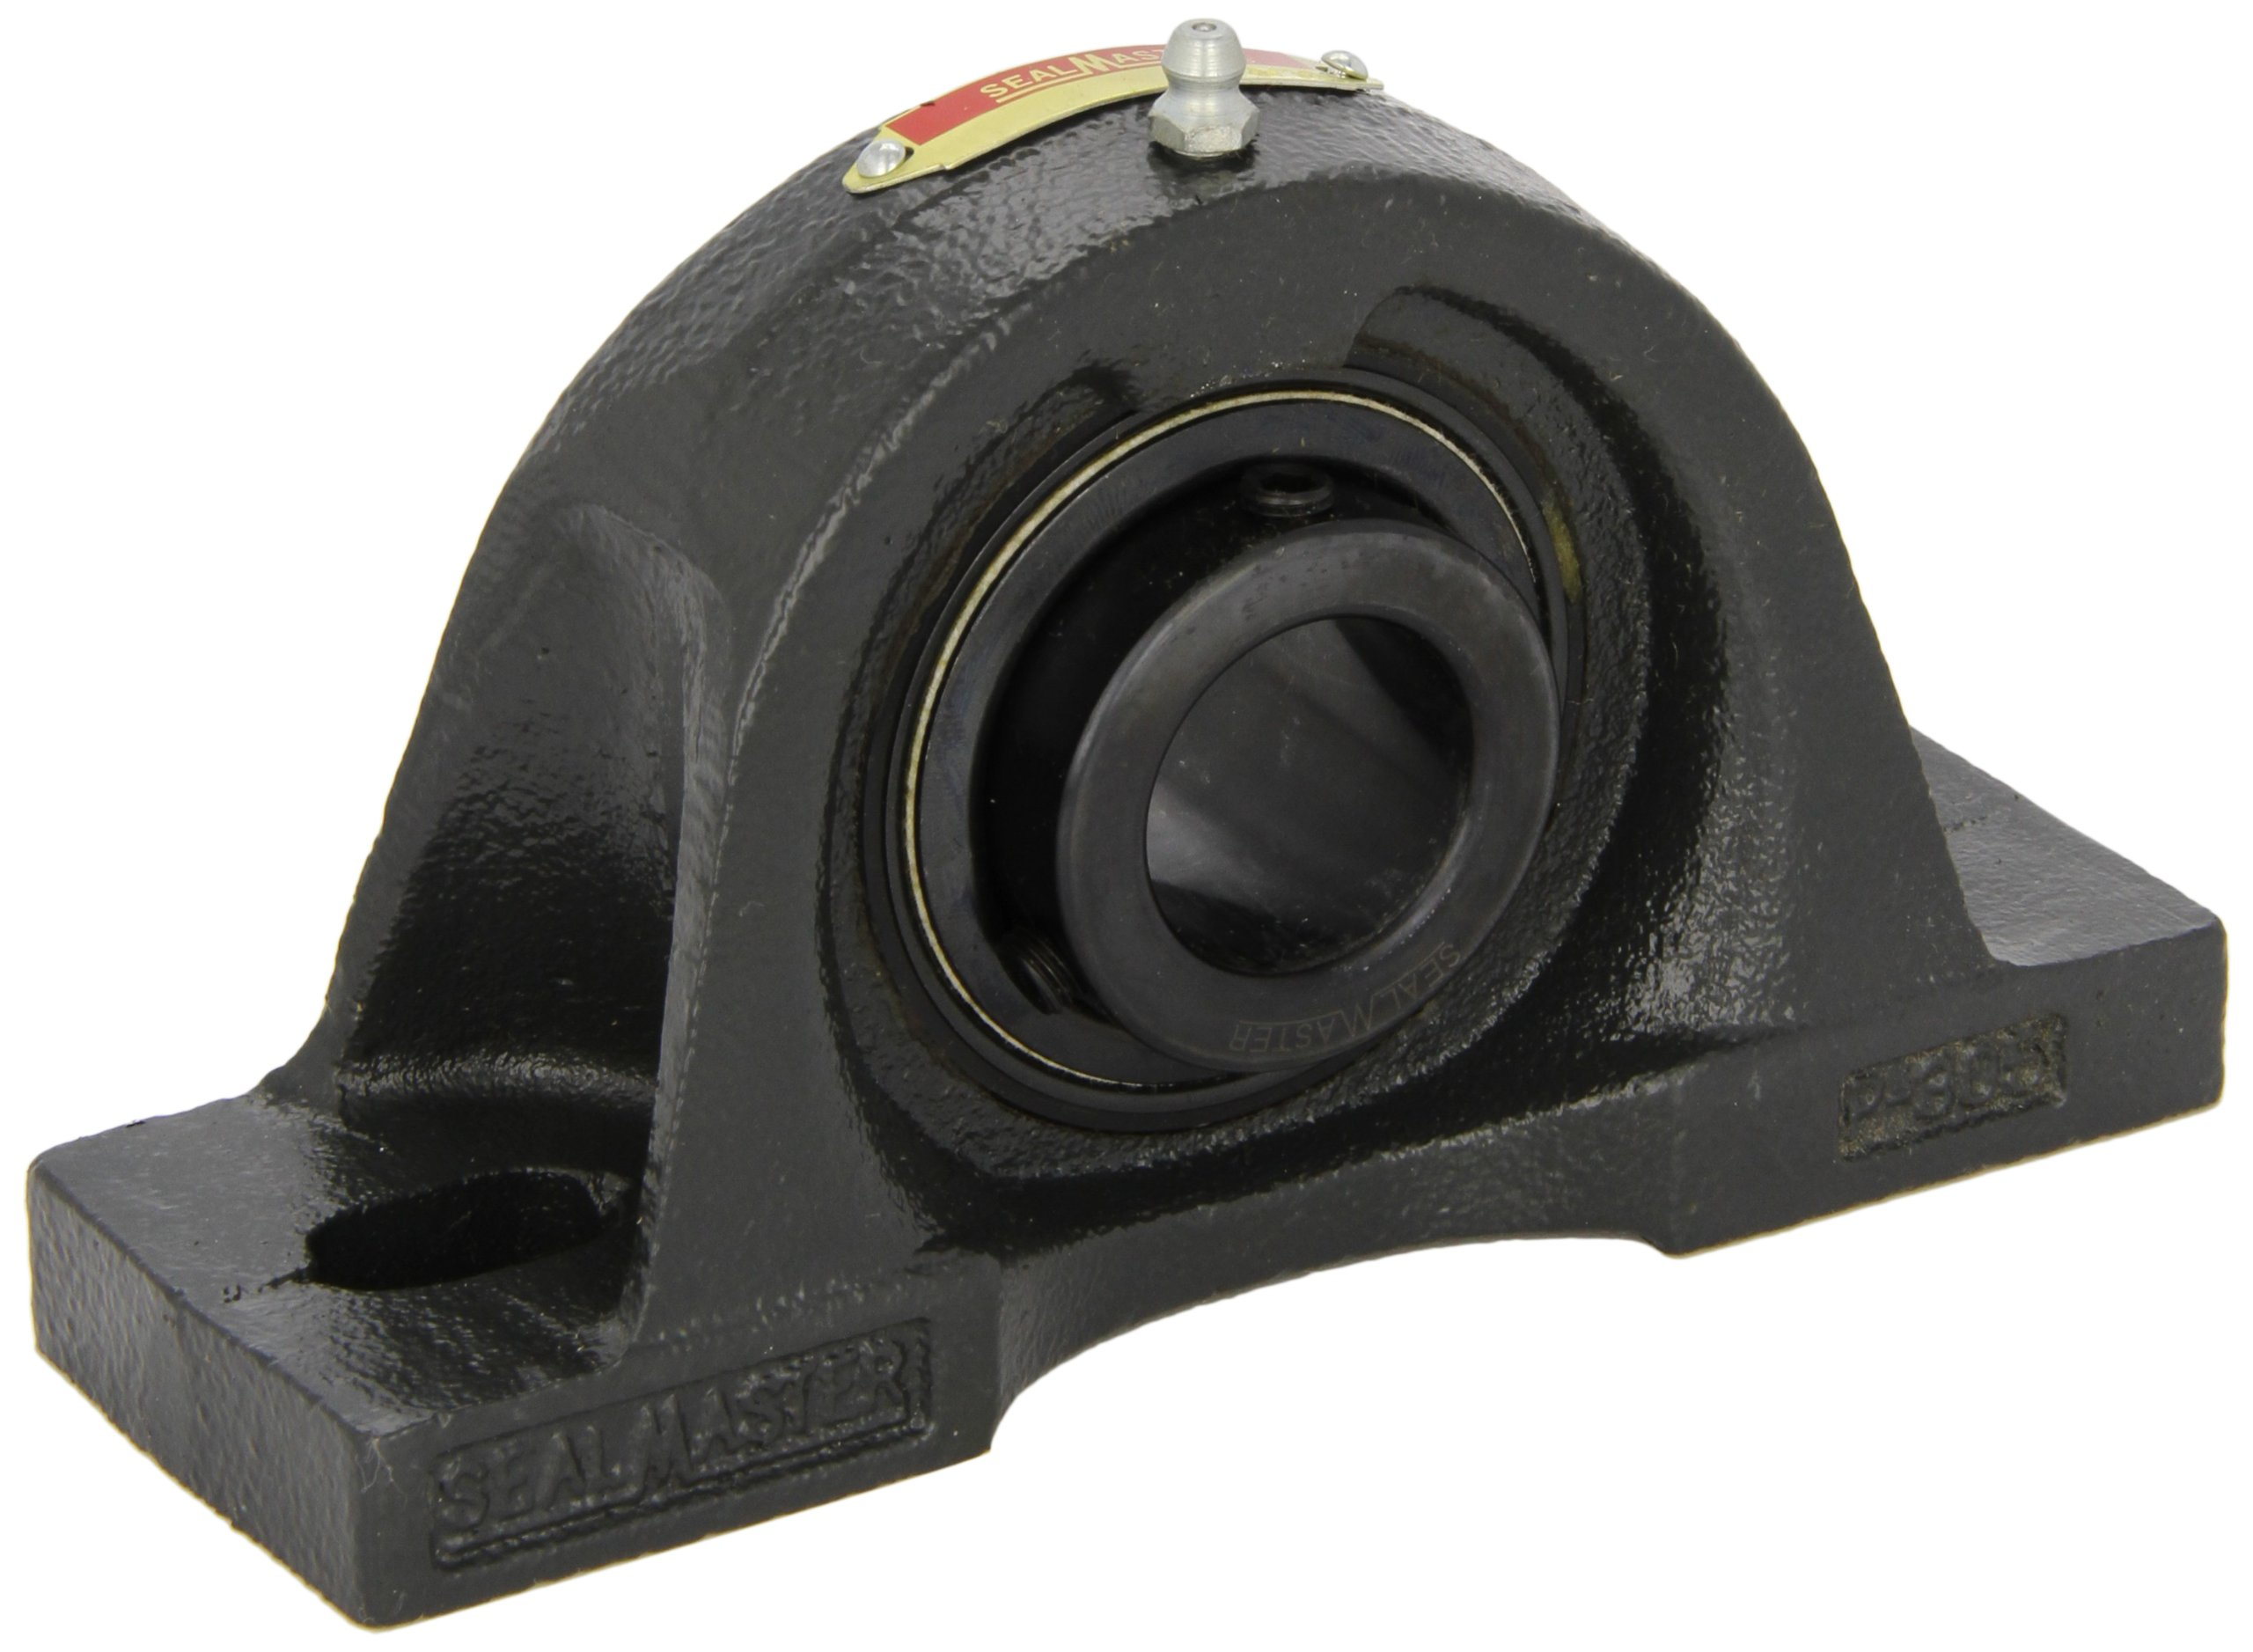 Sealmaster MP-39 Pillow Block Ball Bearing, Non-Expansion Type, Medium-Duty, Regreasable, Setscrew Locking Collar, Felt Seals, Cast Iron Housing, 2-7/16'' Bore, 3'' Base to Center Height, 8'' Bolt Hole Spacing Width, ±2 degrees Misalignment Angle